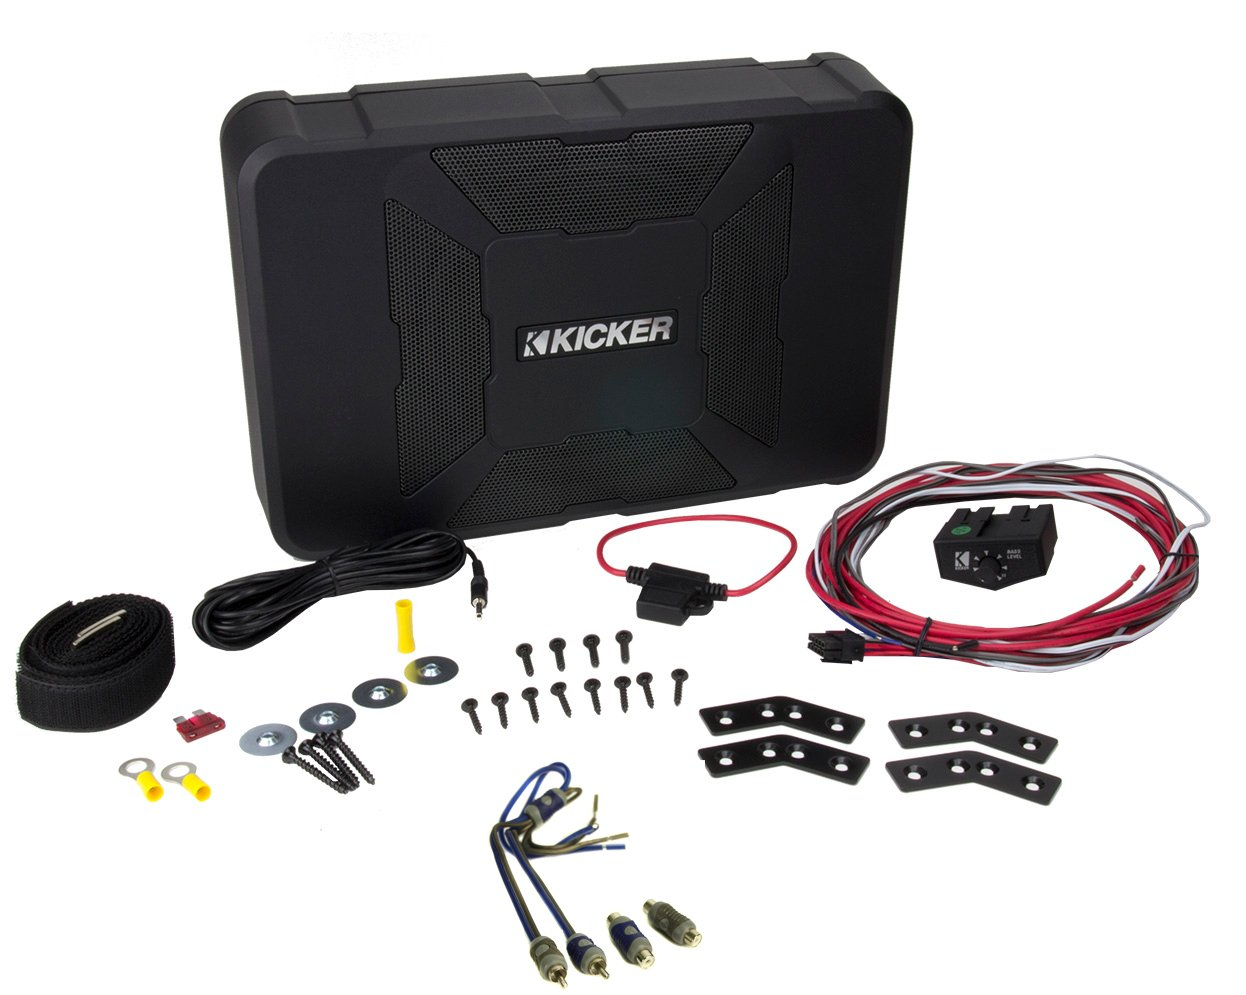 KICKER 11HS8 8'' 150W Hideaway Car Audio Powered Subwoofer Sub Enclosure+Adapter